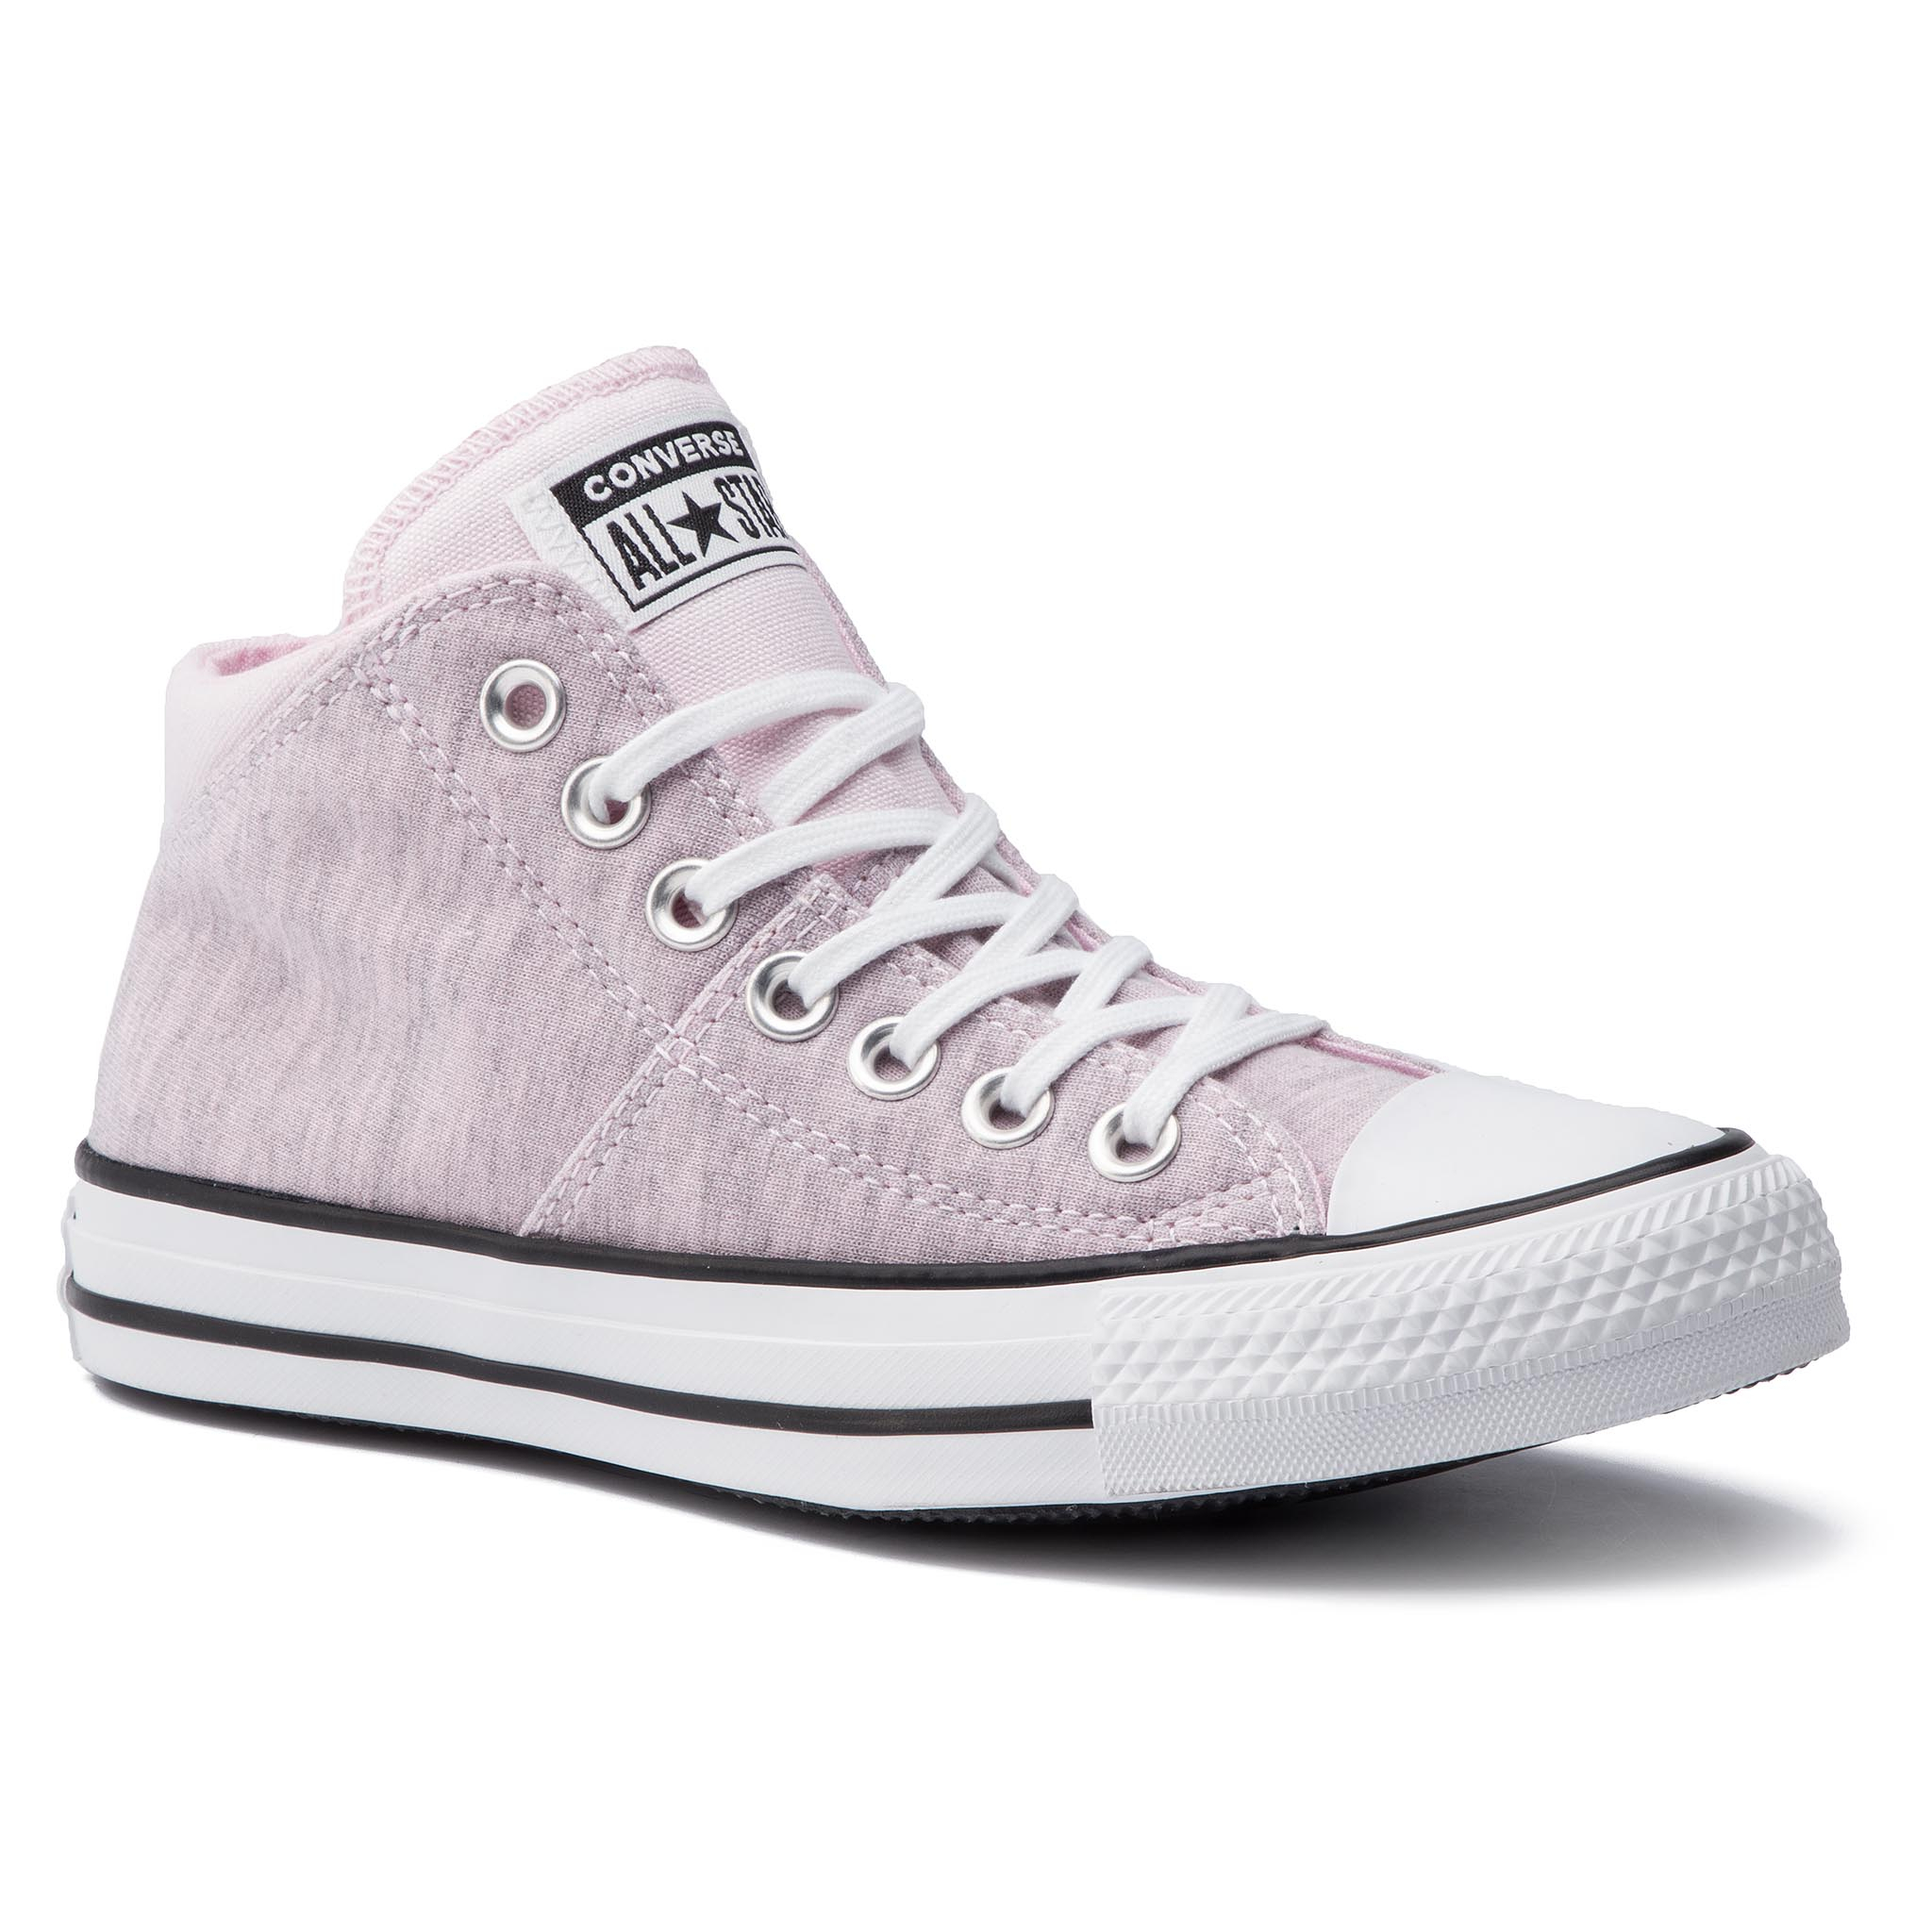 Teniși CONVERSE - Ctas Madison Mid 563450C Pink Foam/White/Black